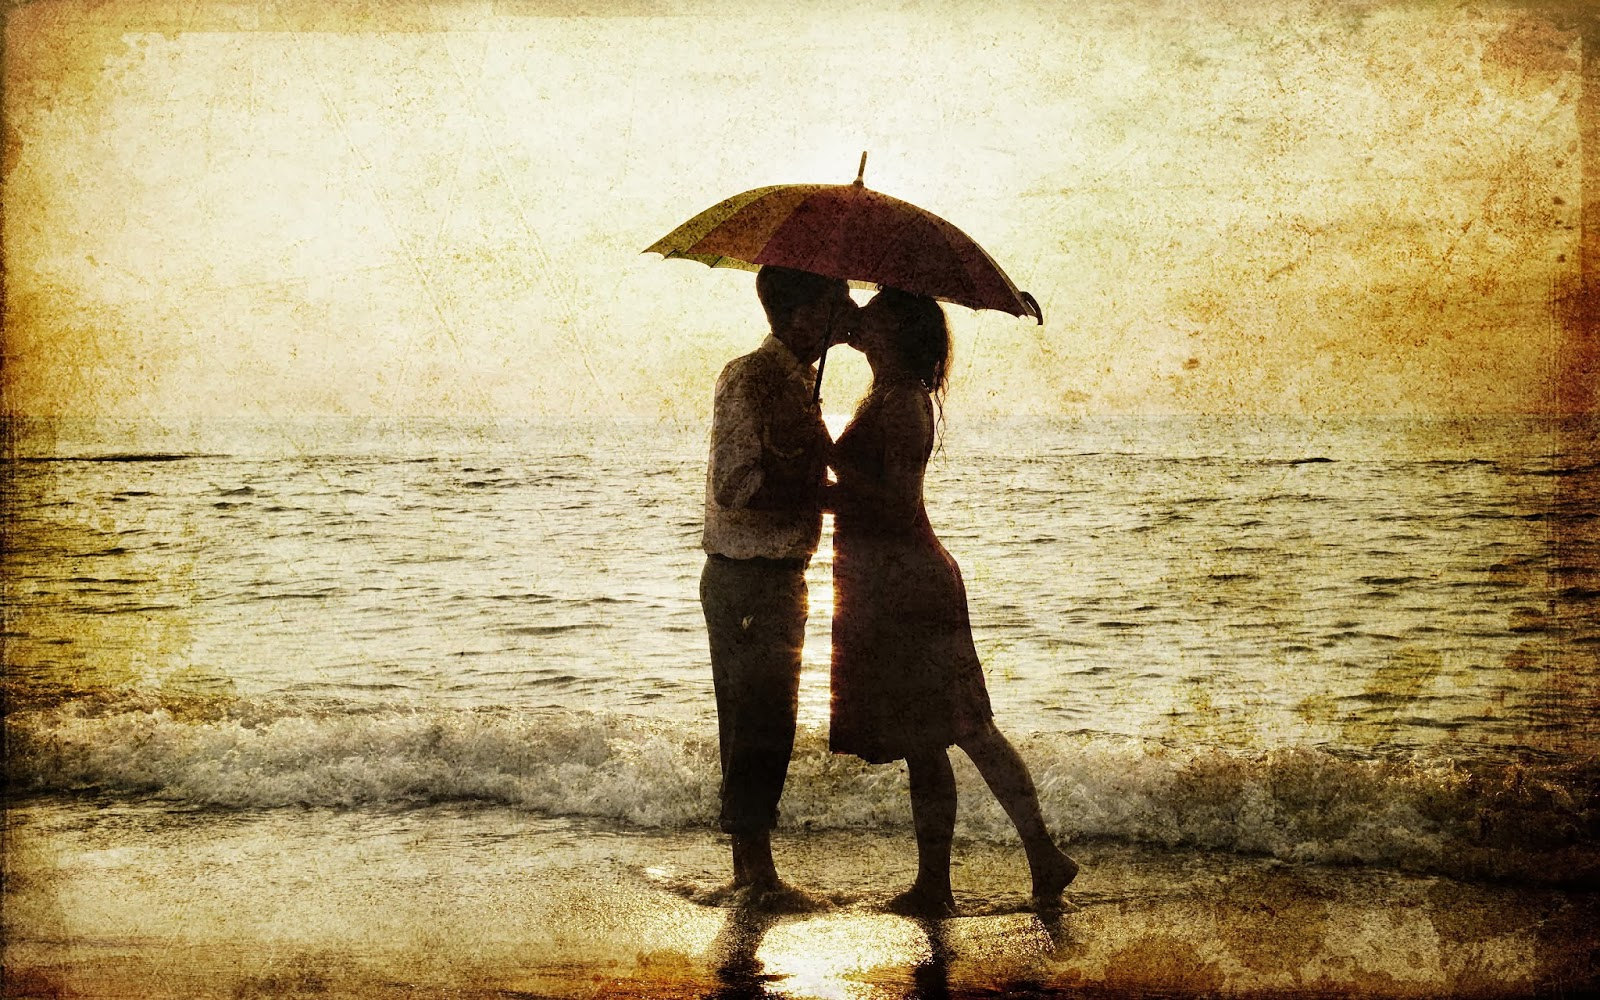 Boy-and-girl-kiss-at-seashore-under-umbrella-photos-download.jpg